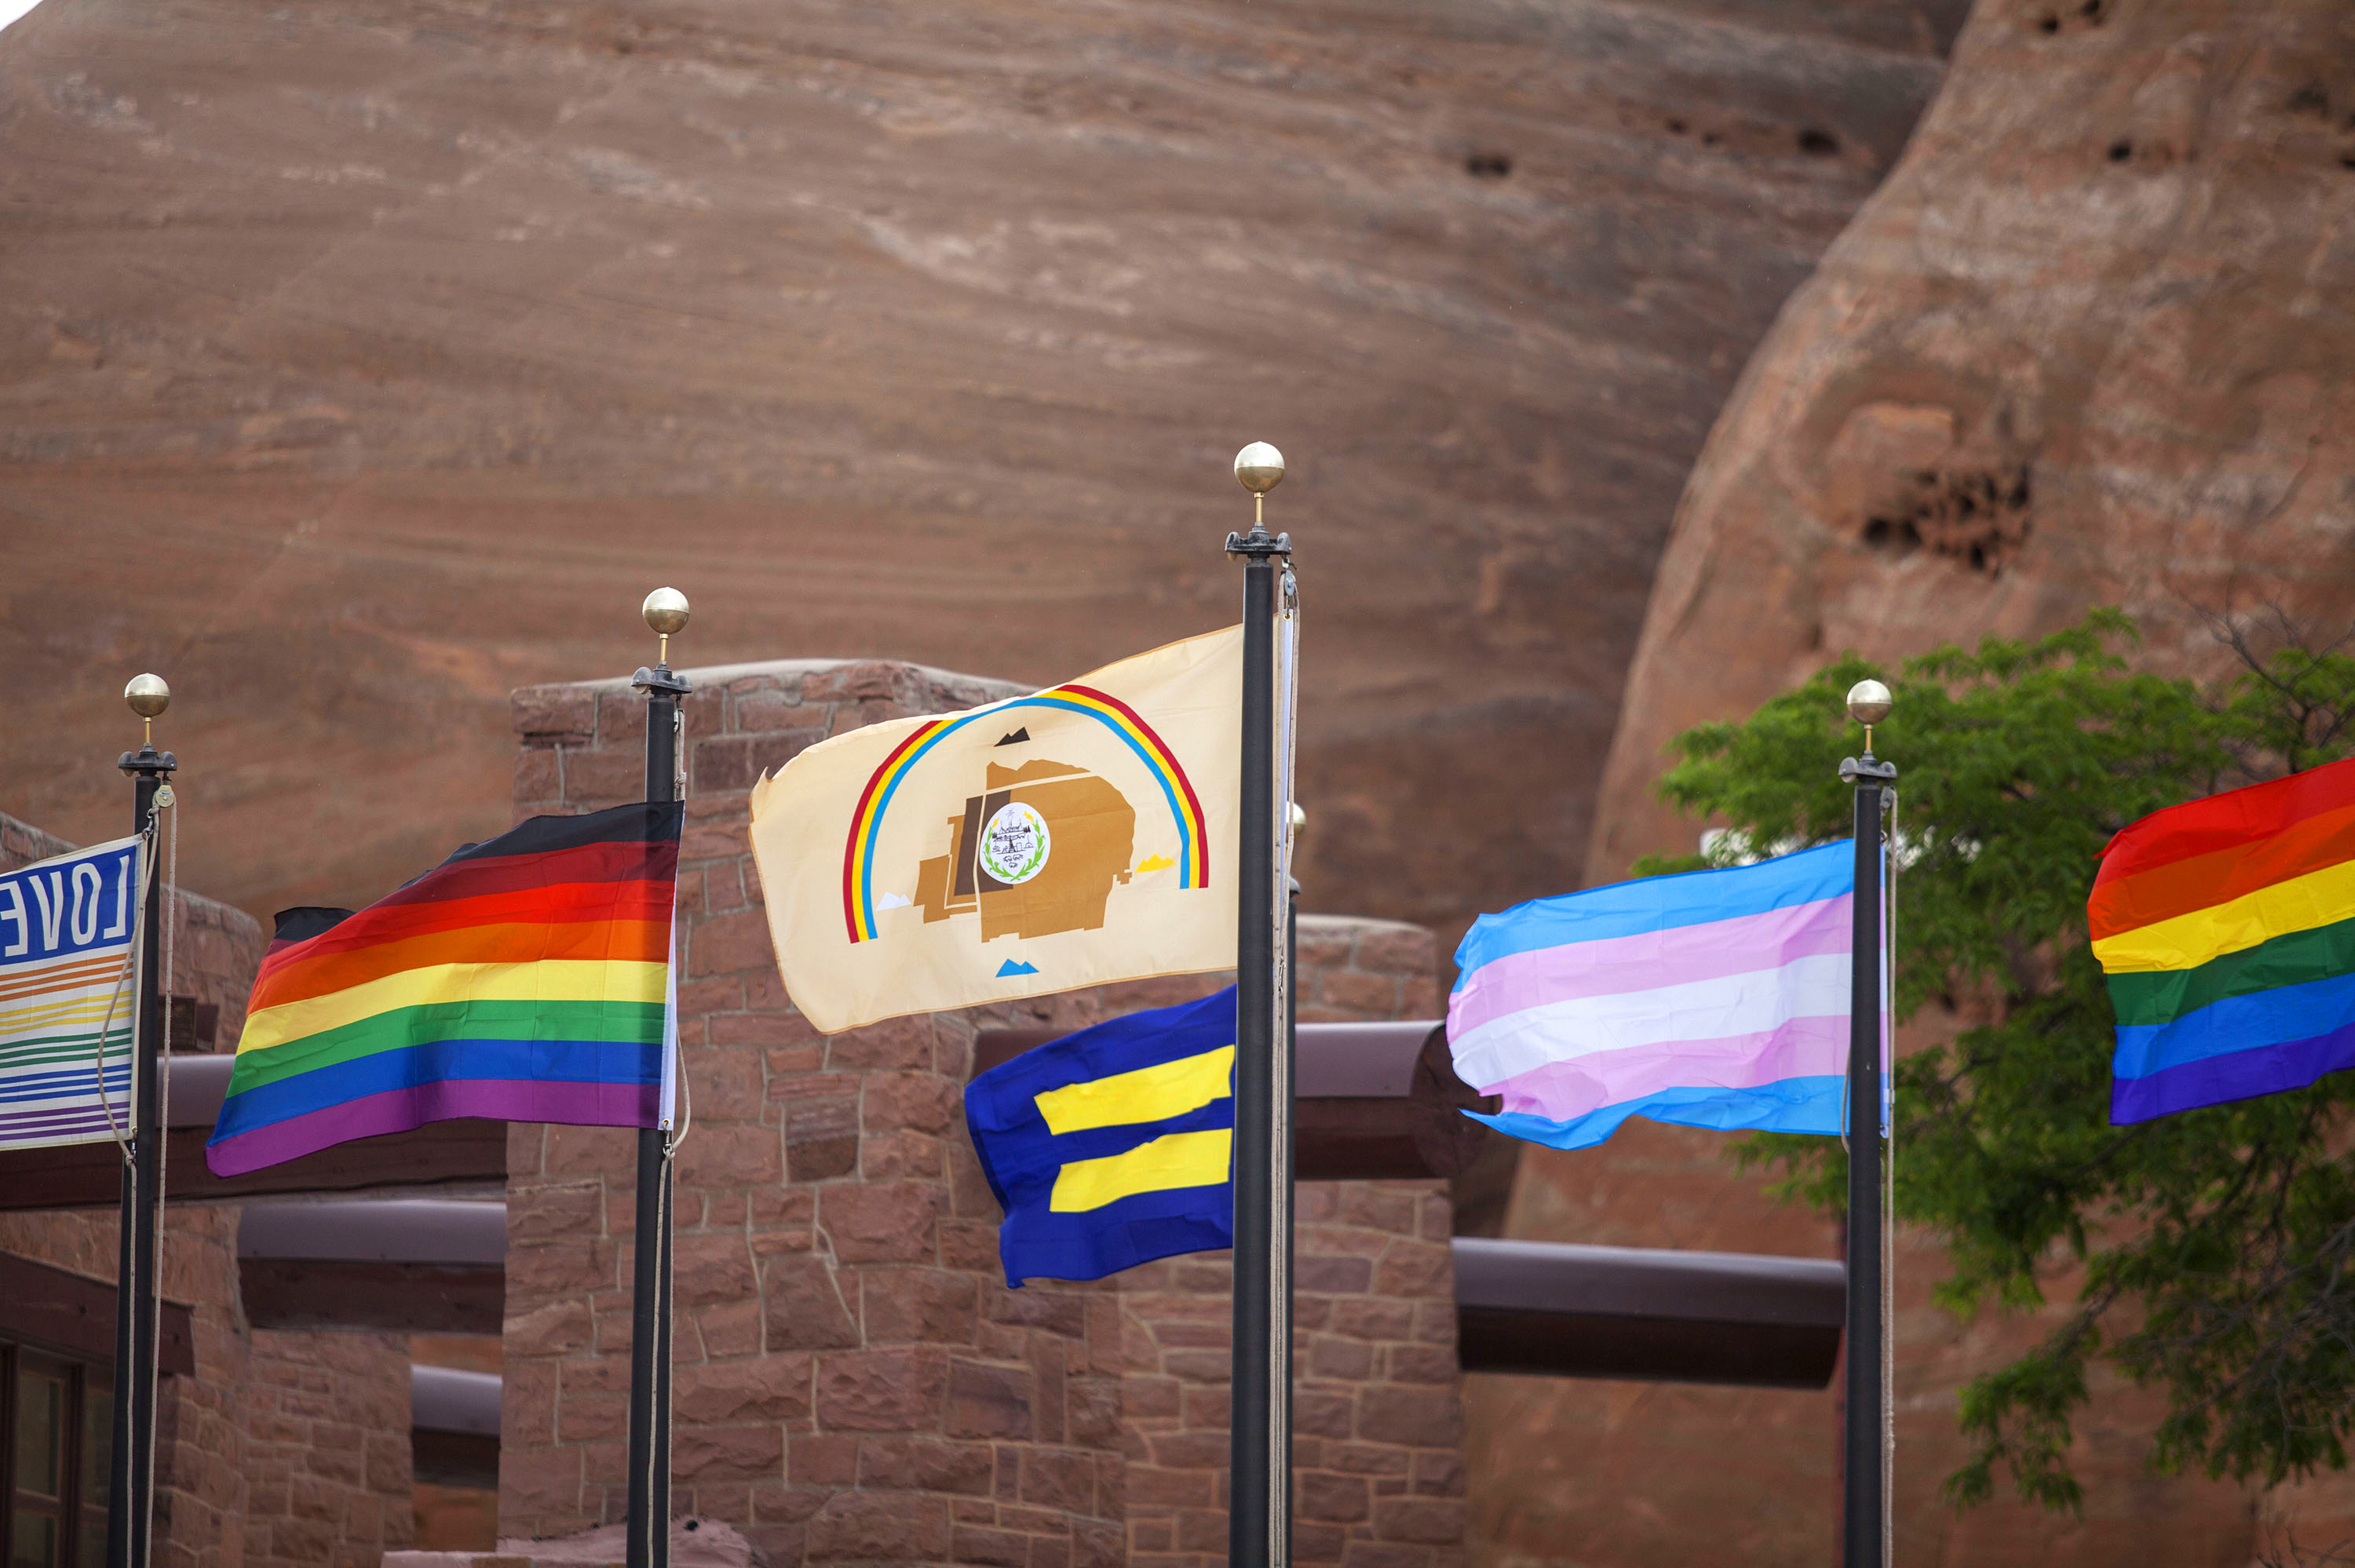 Dine Pride Navajo Nation Highlights Lgbtq Community The Picture Show Npr